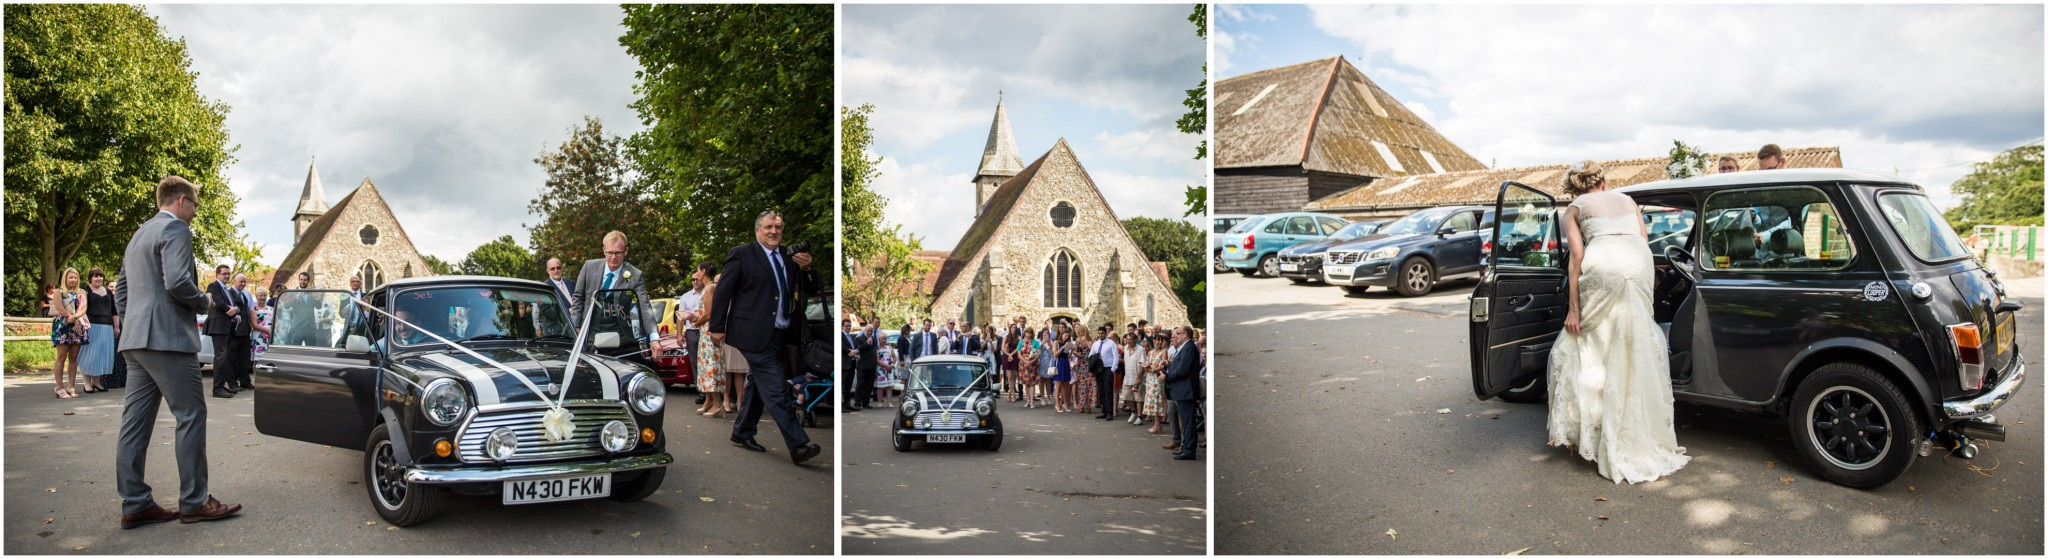 St Thomas a Becket Church Wedding Mini as Wedding Car